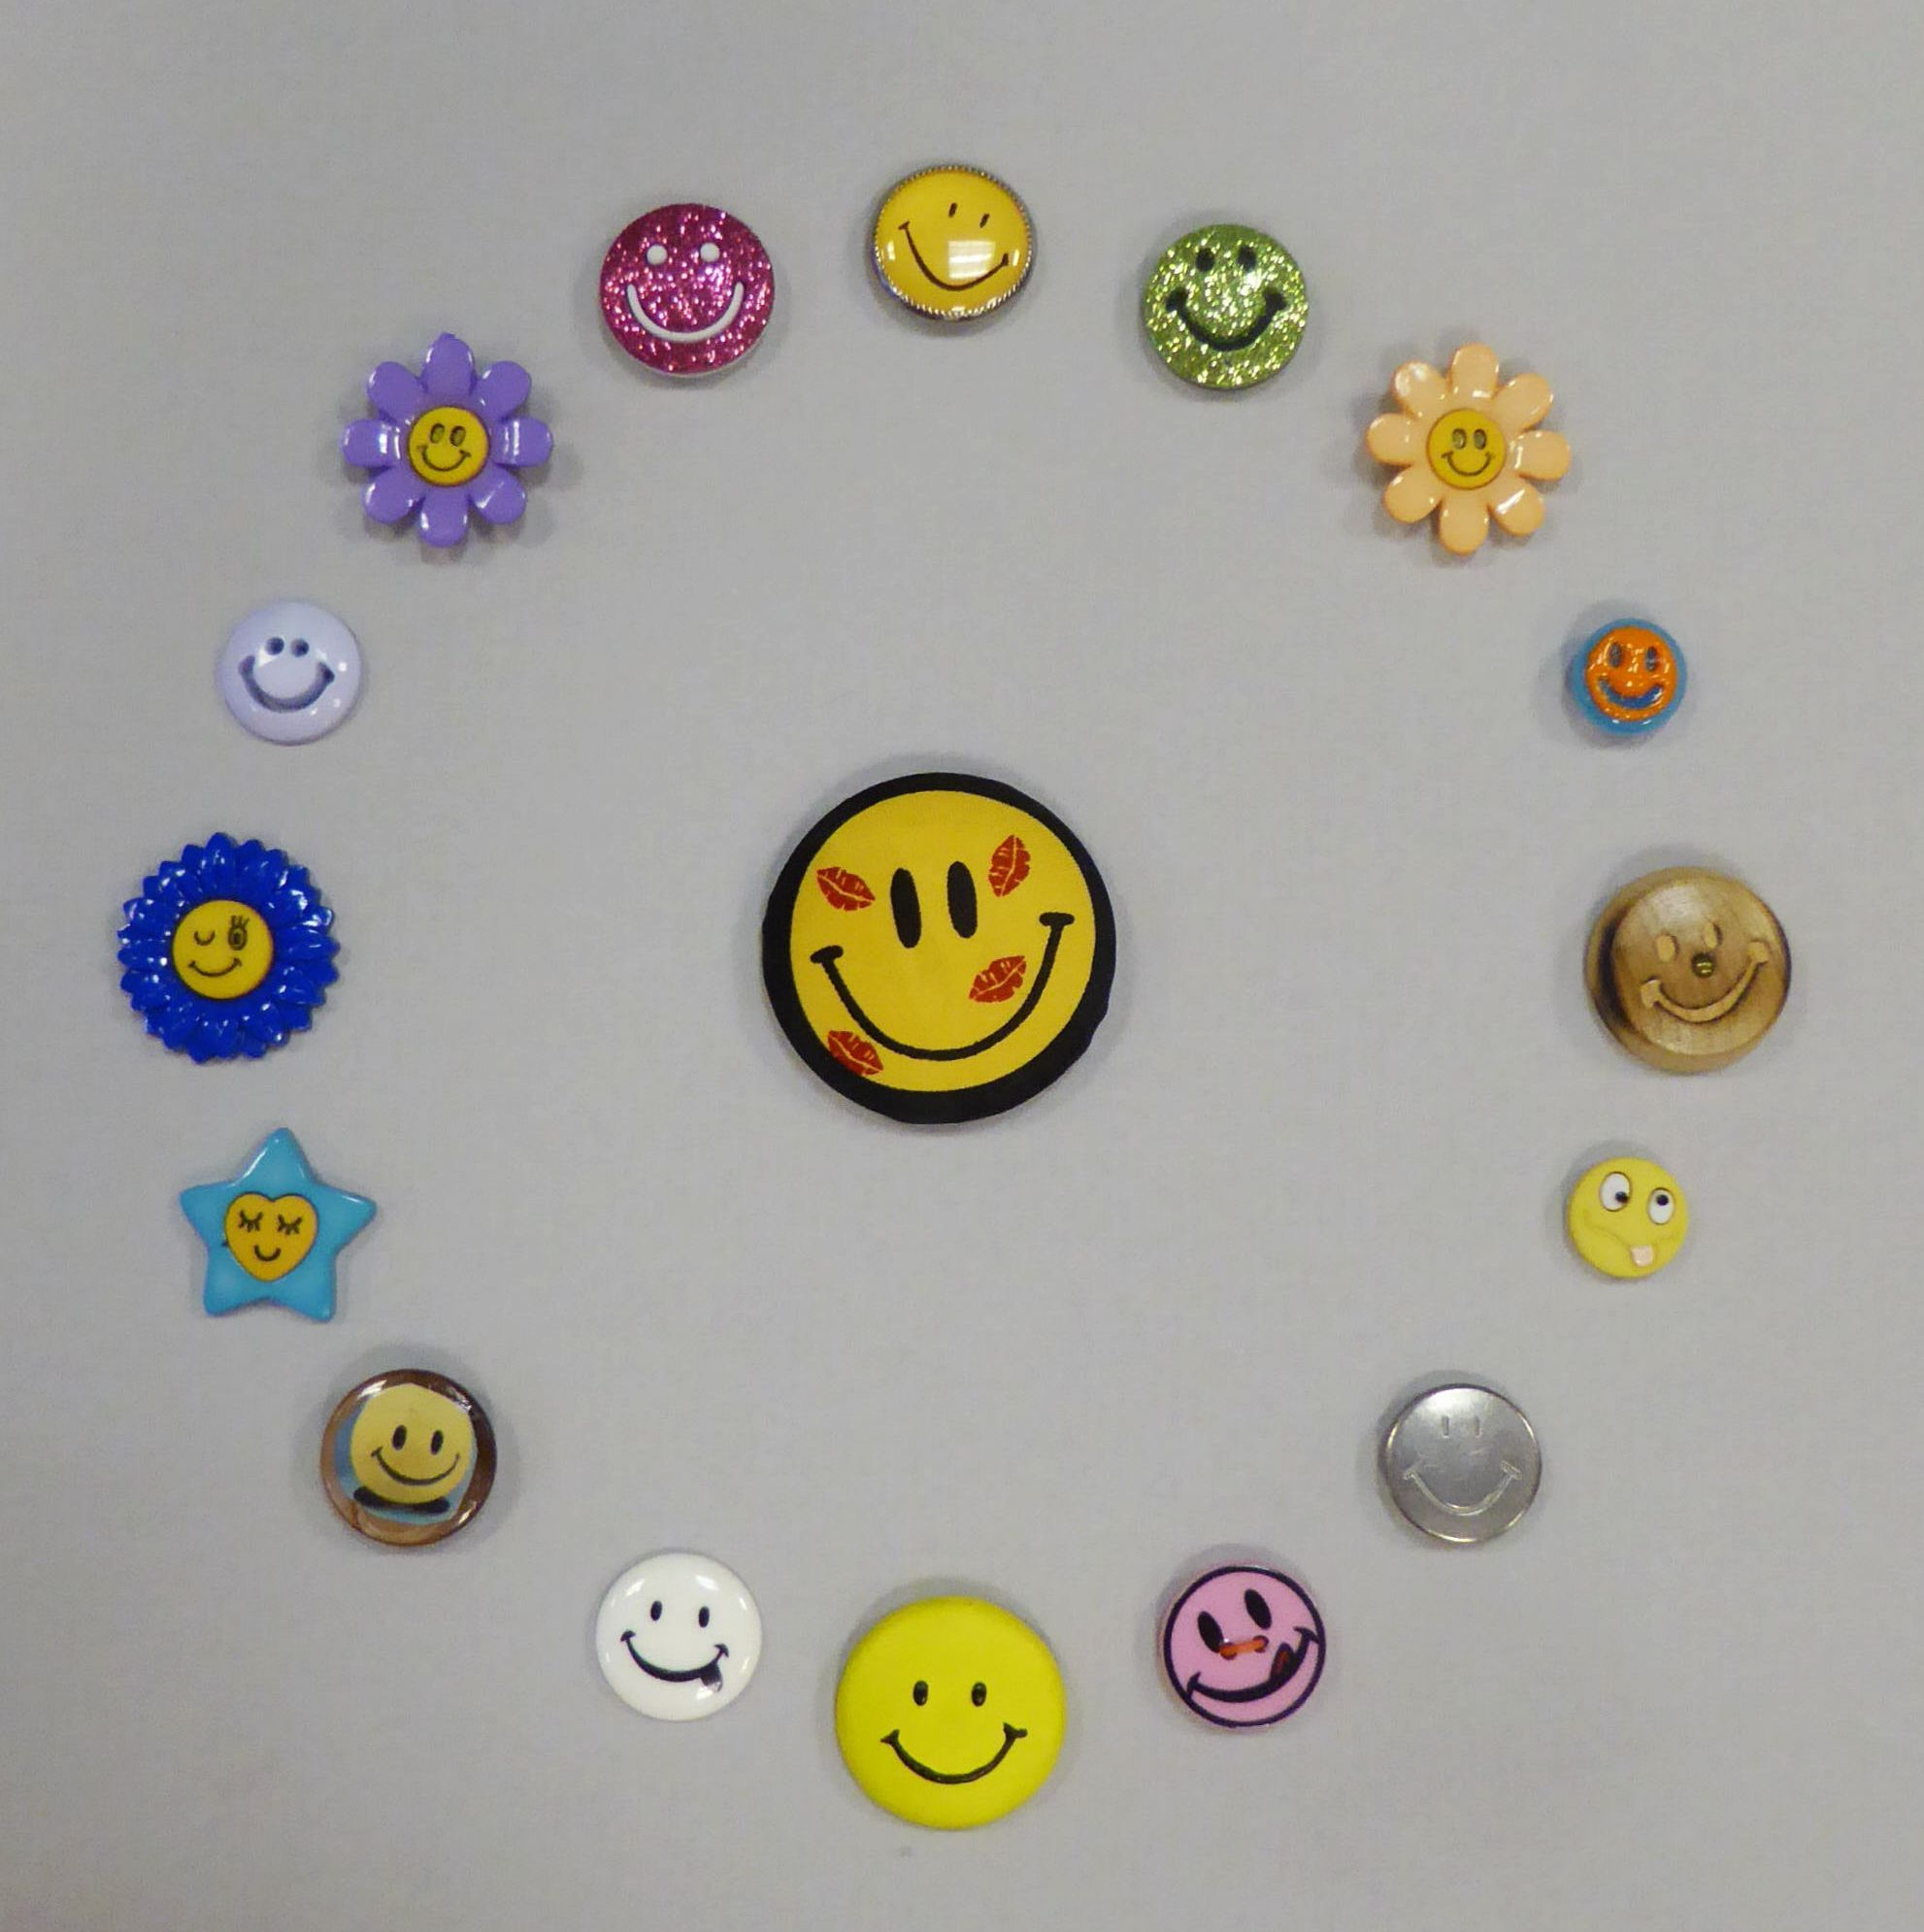 A smiley happy or smiling face is a stylized